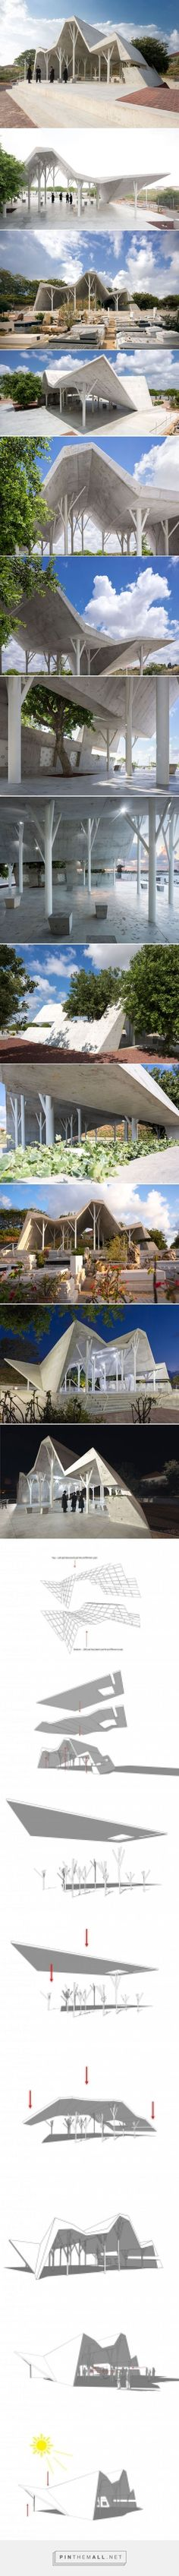 170506 기둥디자인 참고자료 ron shenkin places concrete folded canopy over cemetery pavilion in israel - created via http://pinthemall.net